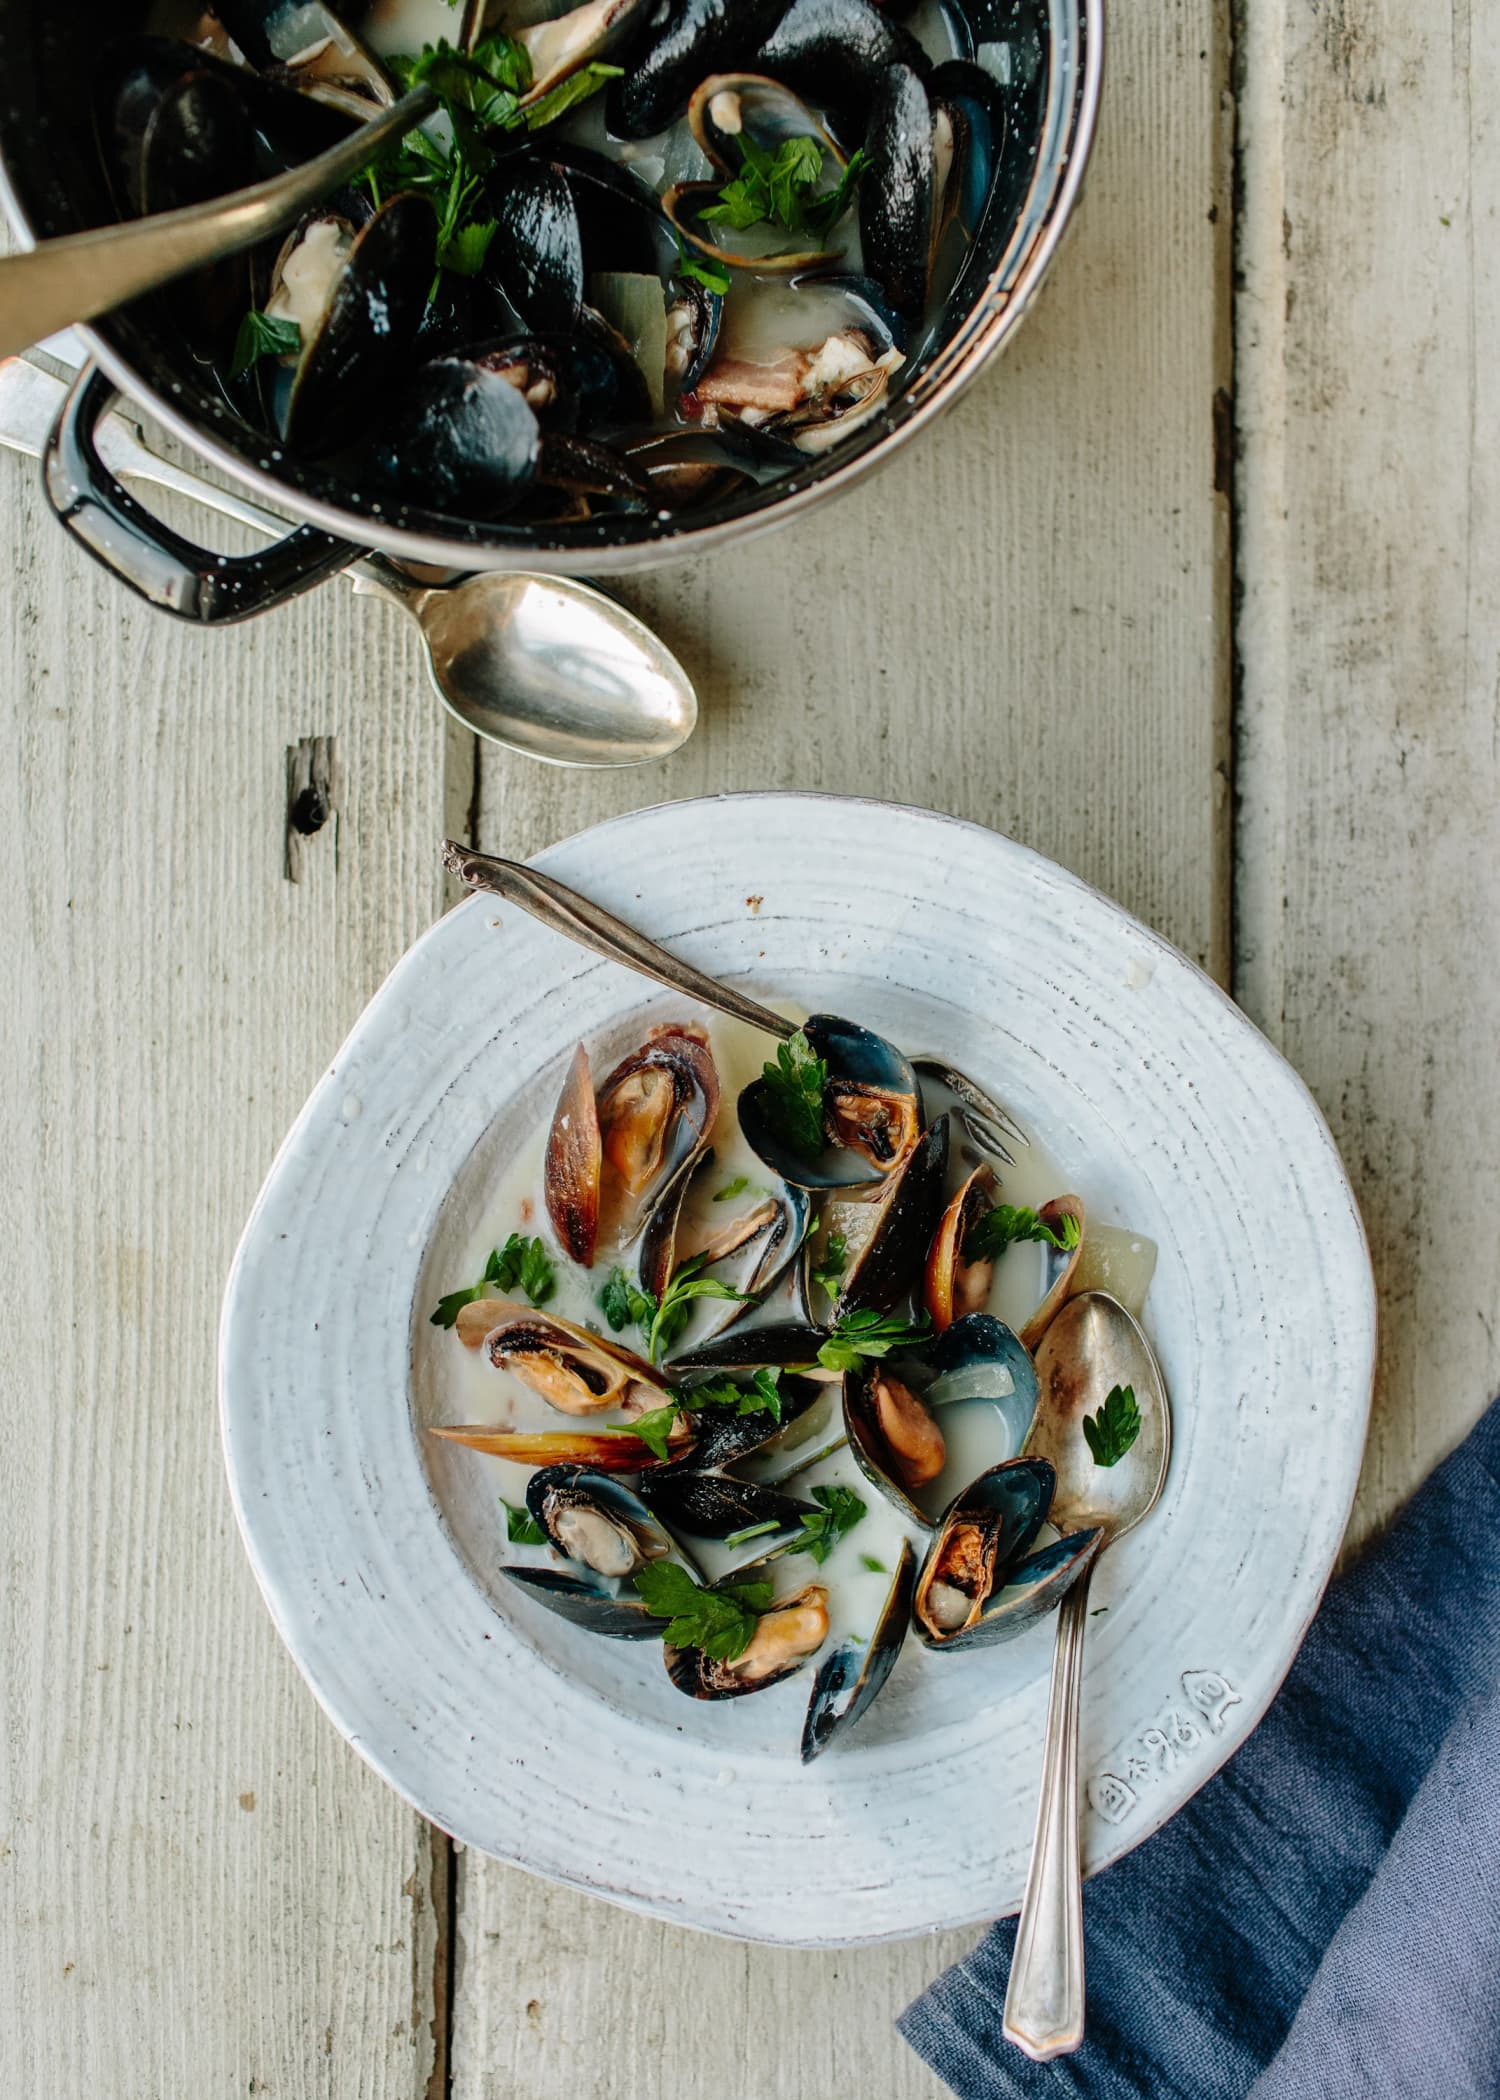 You'll Want to Eat These Mussels in Irish Cider Straight From the Pot